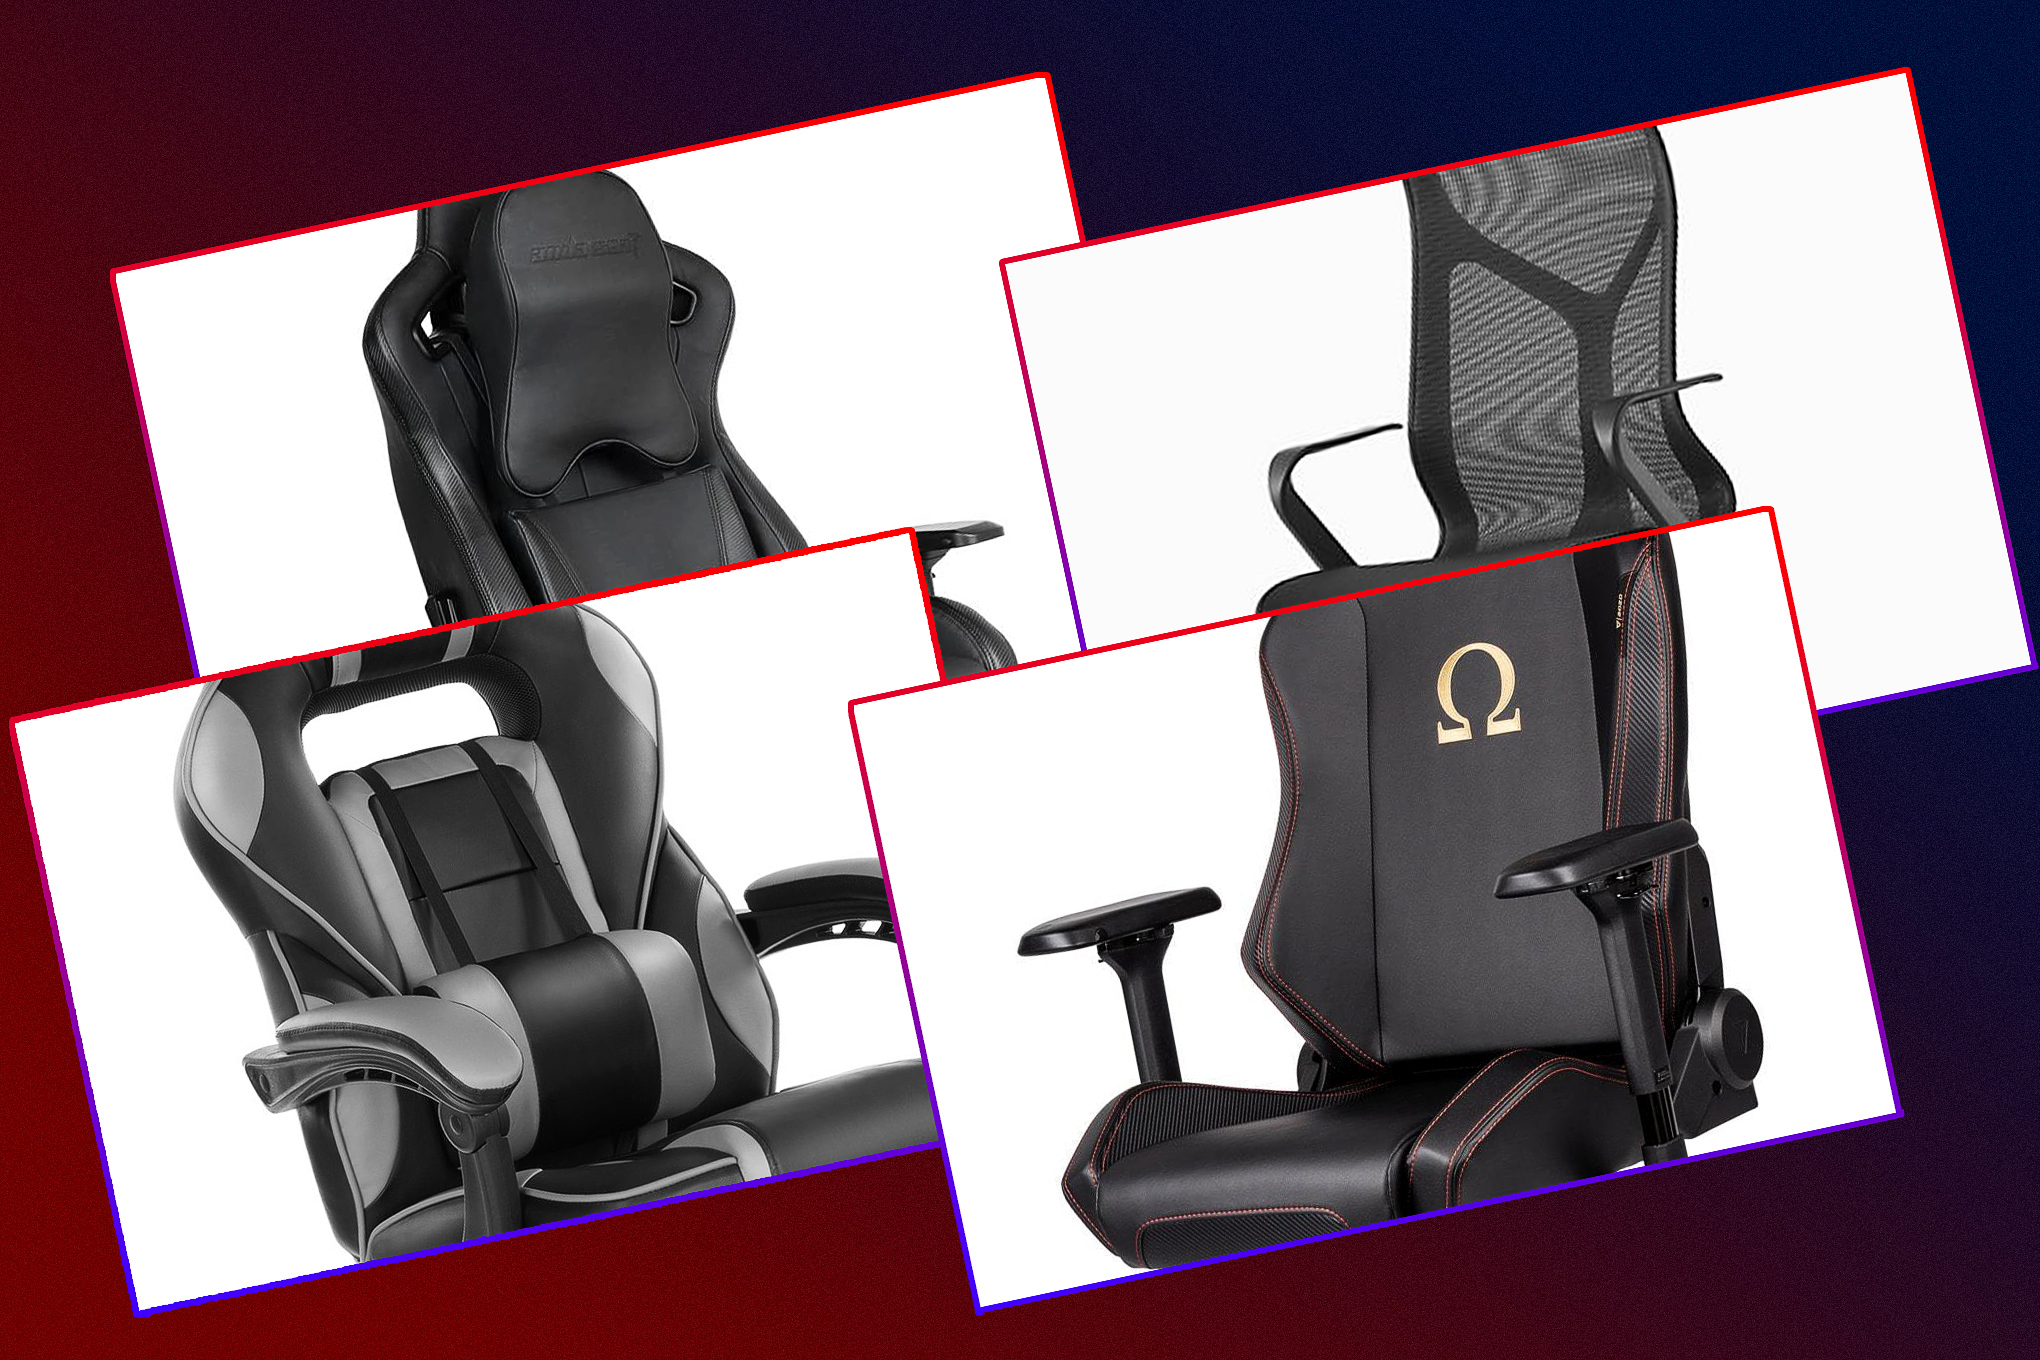 Grid featuring four different gaming chairs